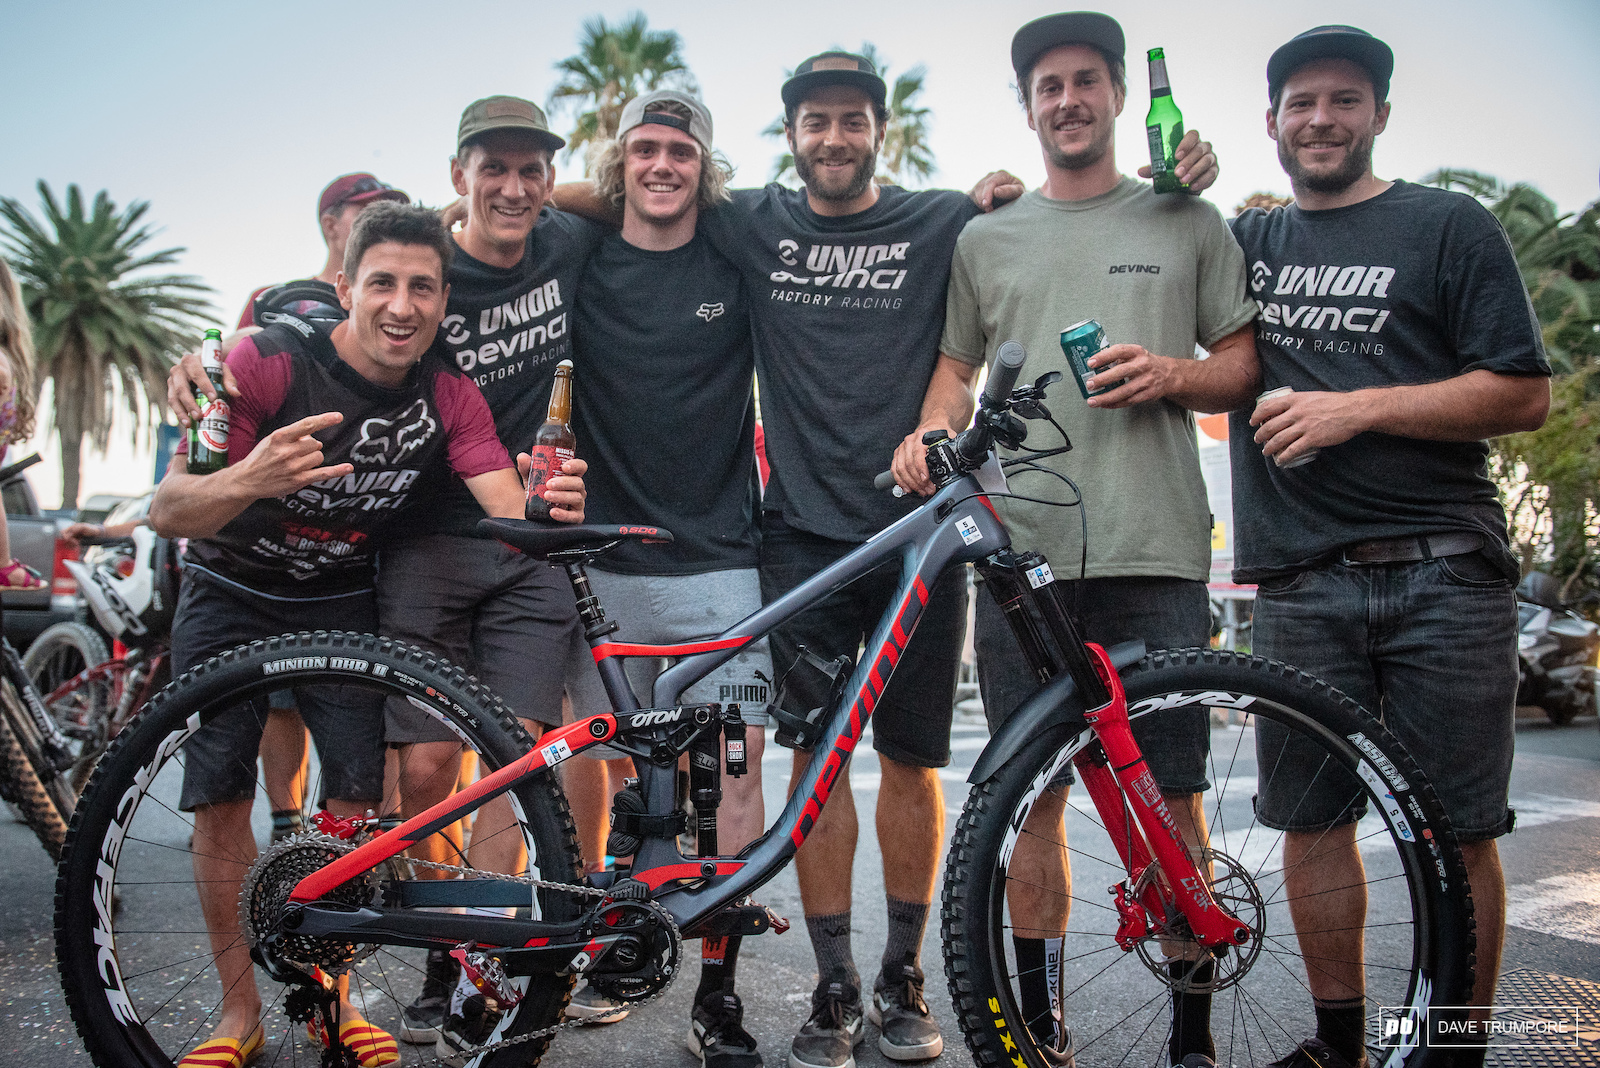 2nd in the world again for Frenchman Damien Oton and the small Devinci team out of Canada.